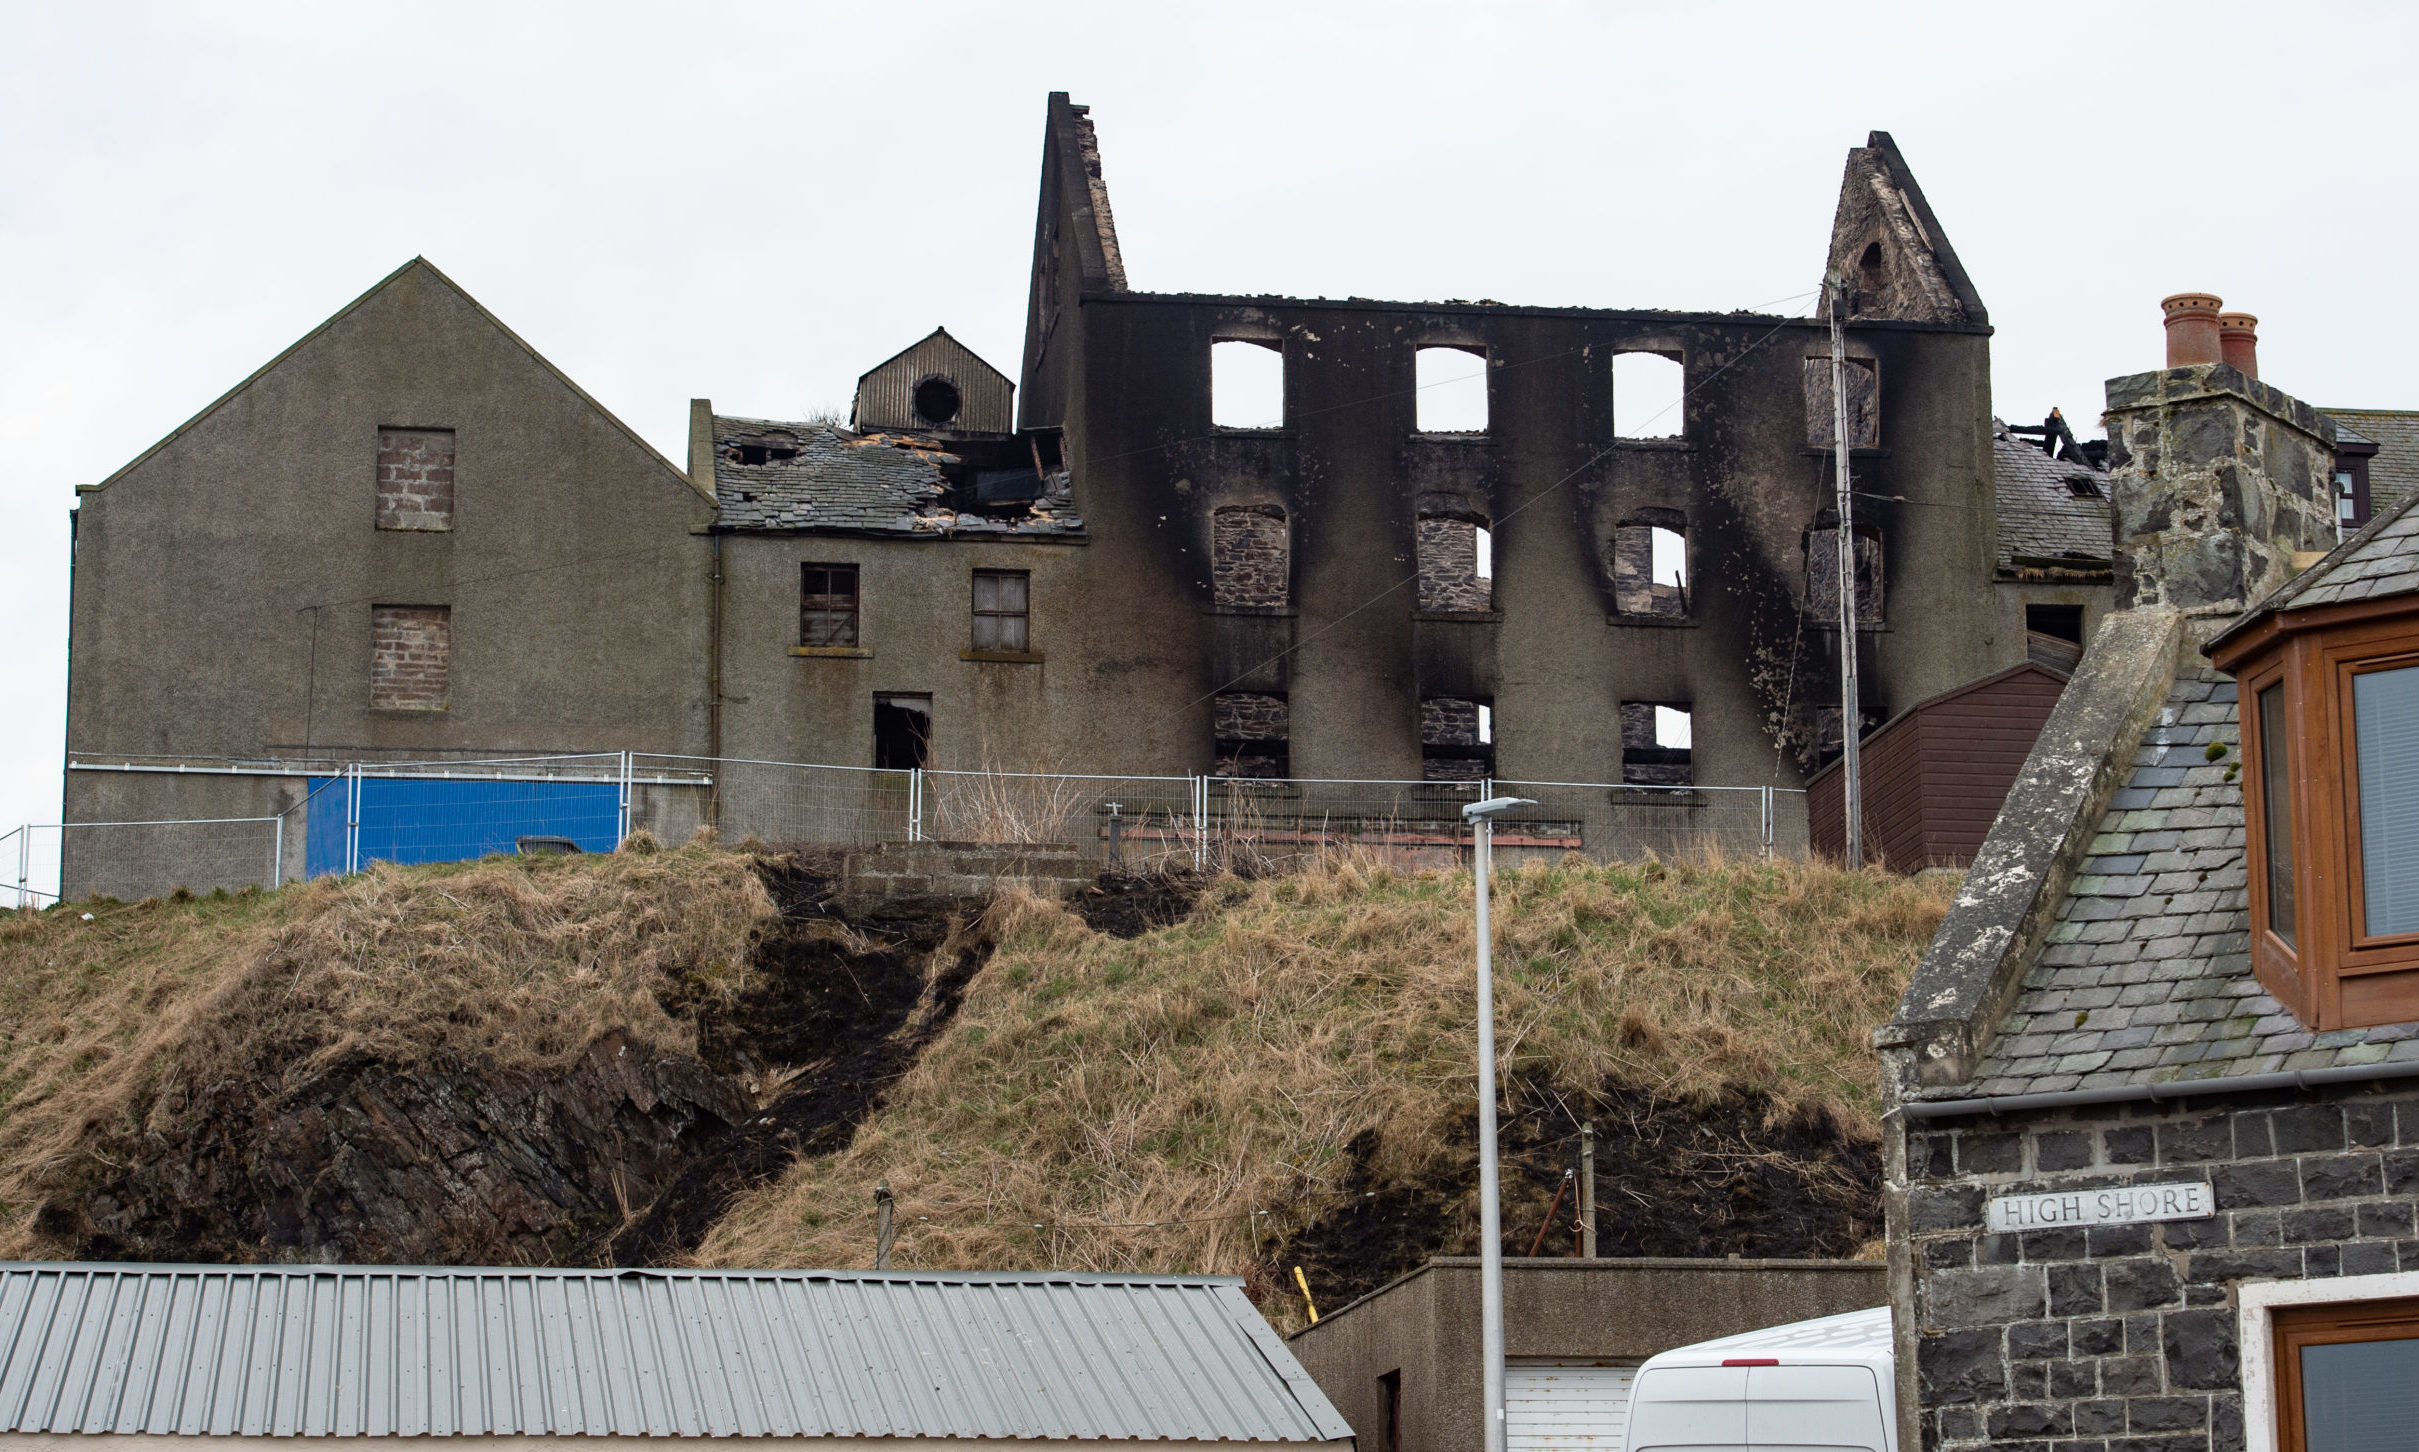 The Commercial Street building in Macduff destroyed by fire.